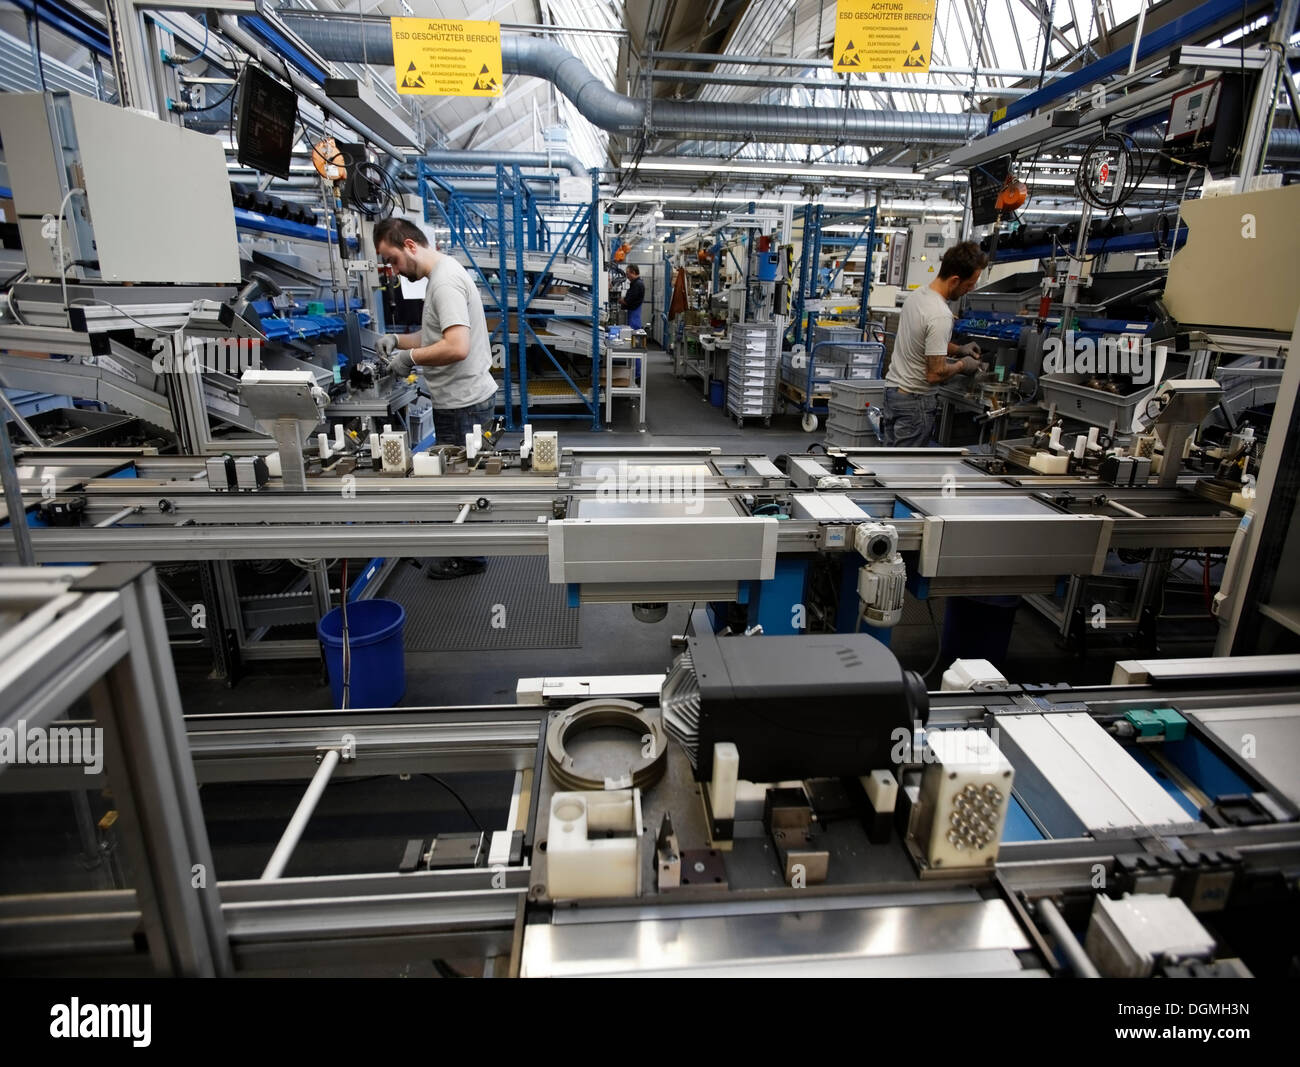 Production of Airtronic vehicle pre-heaters at J. Eberspaecher GmbH & Co. KG, Esslingen, Baden-Wuerttemberg - Stock Image